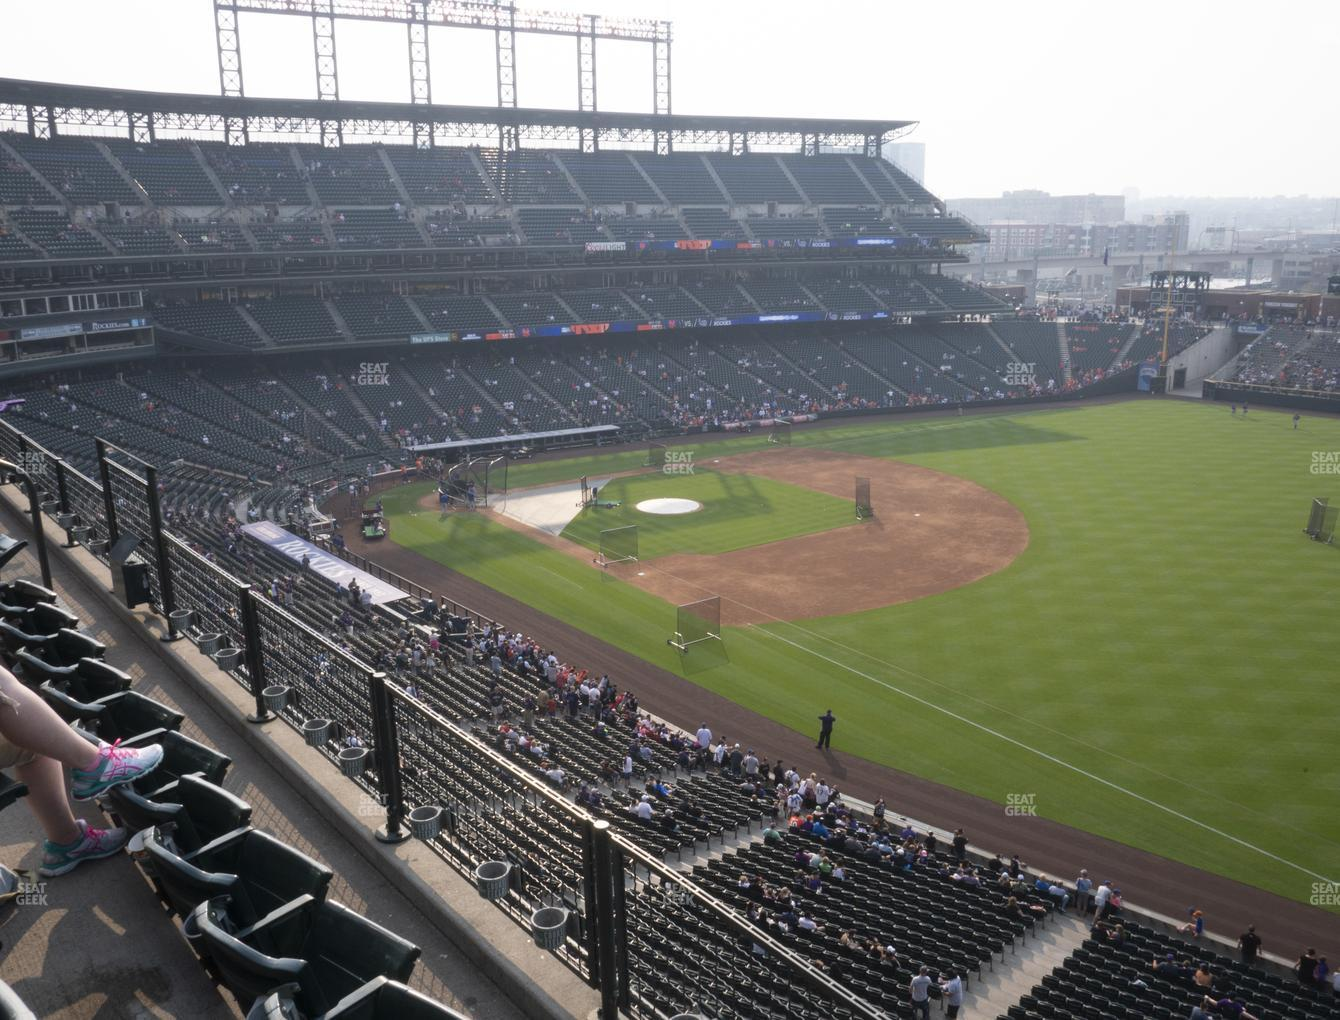 Colorado Rockies at Coors Field Lower 316 View